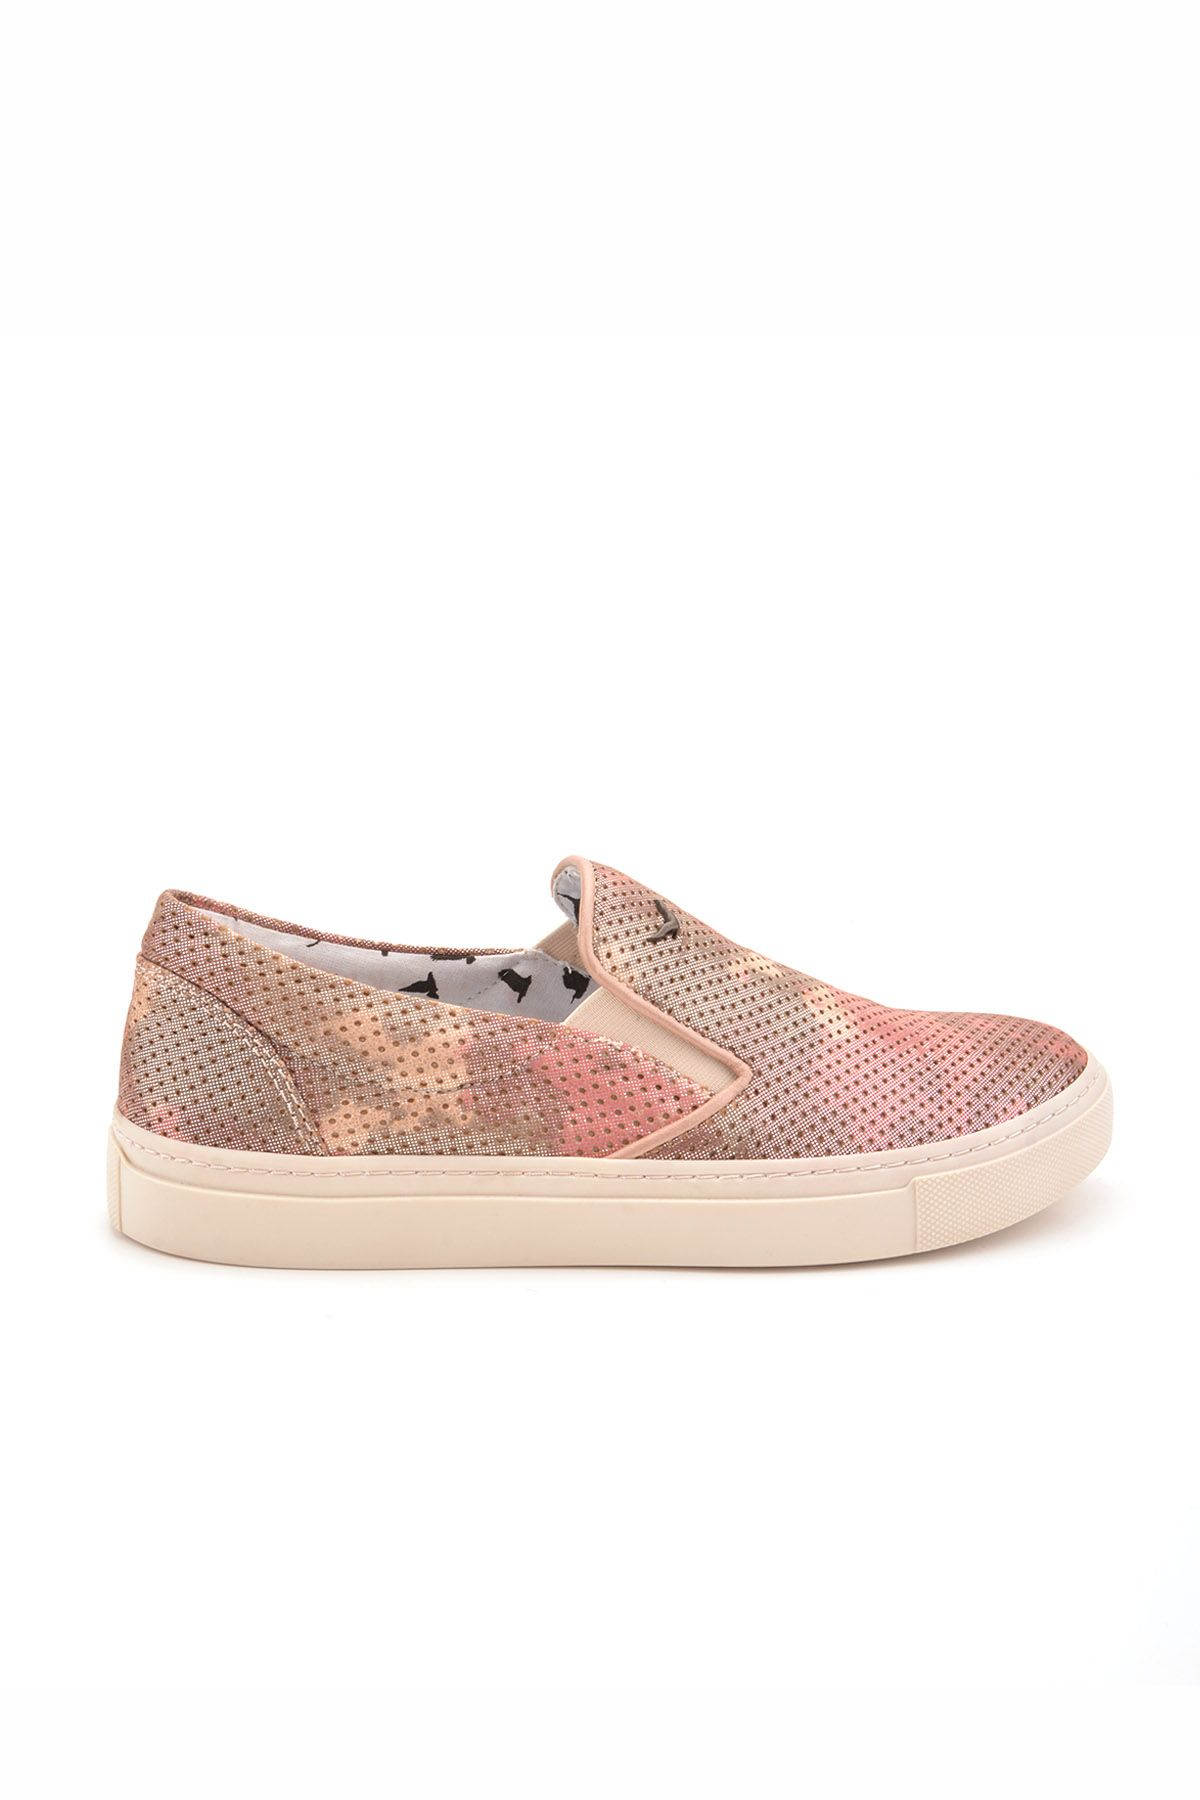 Art Goya Perforated Women Sneakers From Genuine Leather Powdery